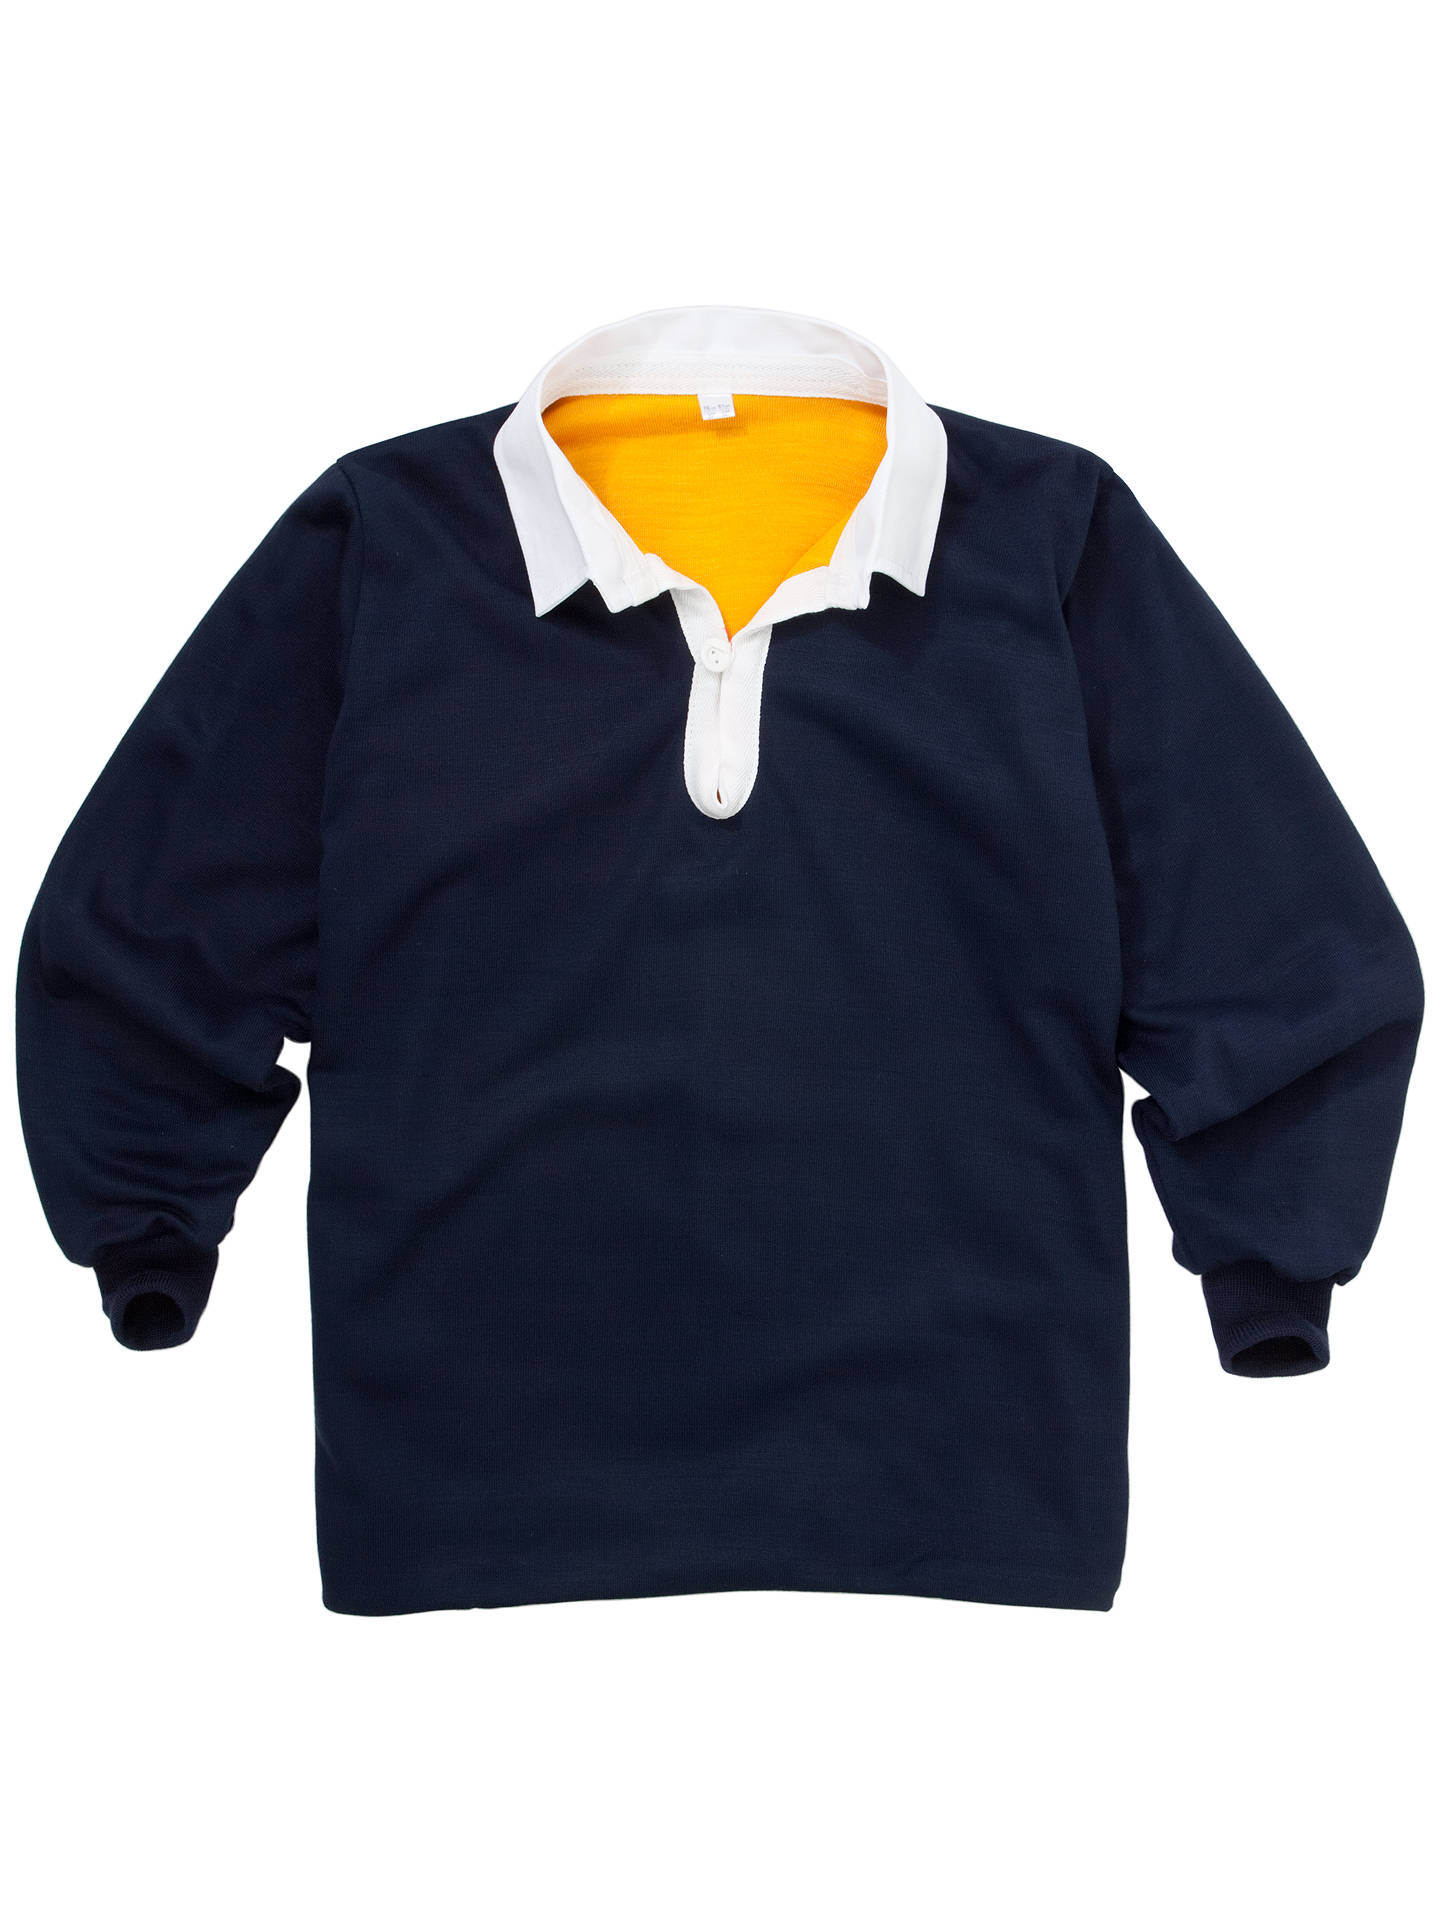 BuySchool Boys' Rugby Jersey, Navy Multi, Chest 30/32 Online at johnlewis.com